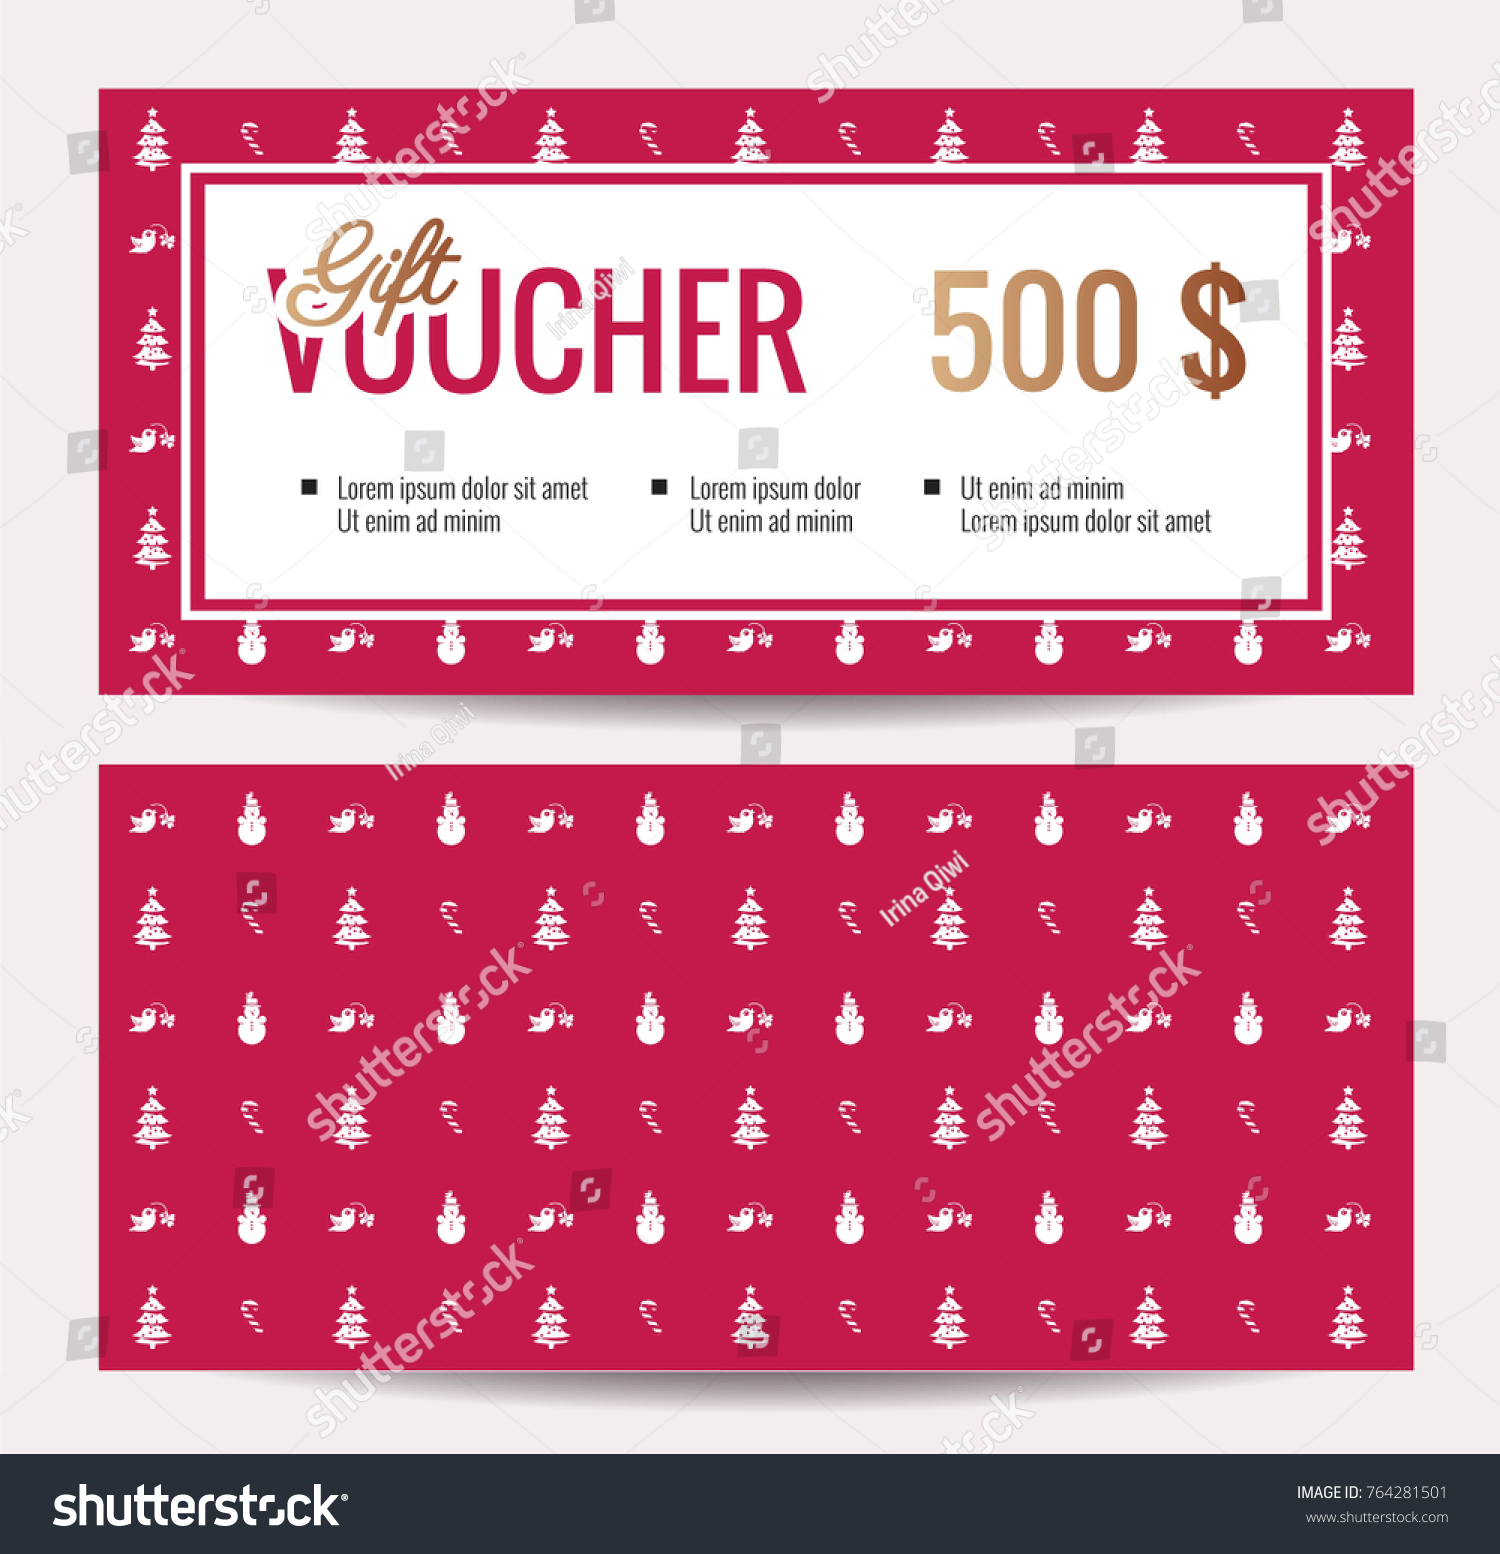 Christmas gift certificate template word general release template discount coupons templates modern word templates stock vector christmas gift voucher coupon discount gift certificate template for merry christmas shopping yadclub Image collections